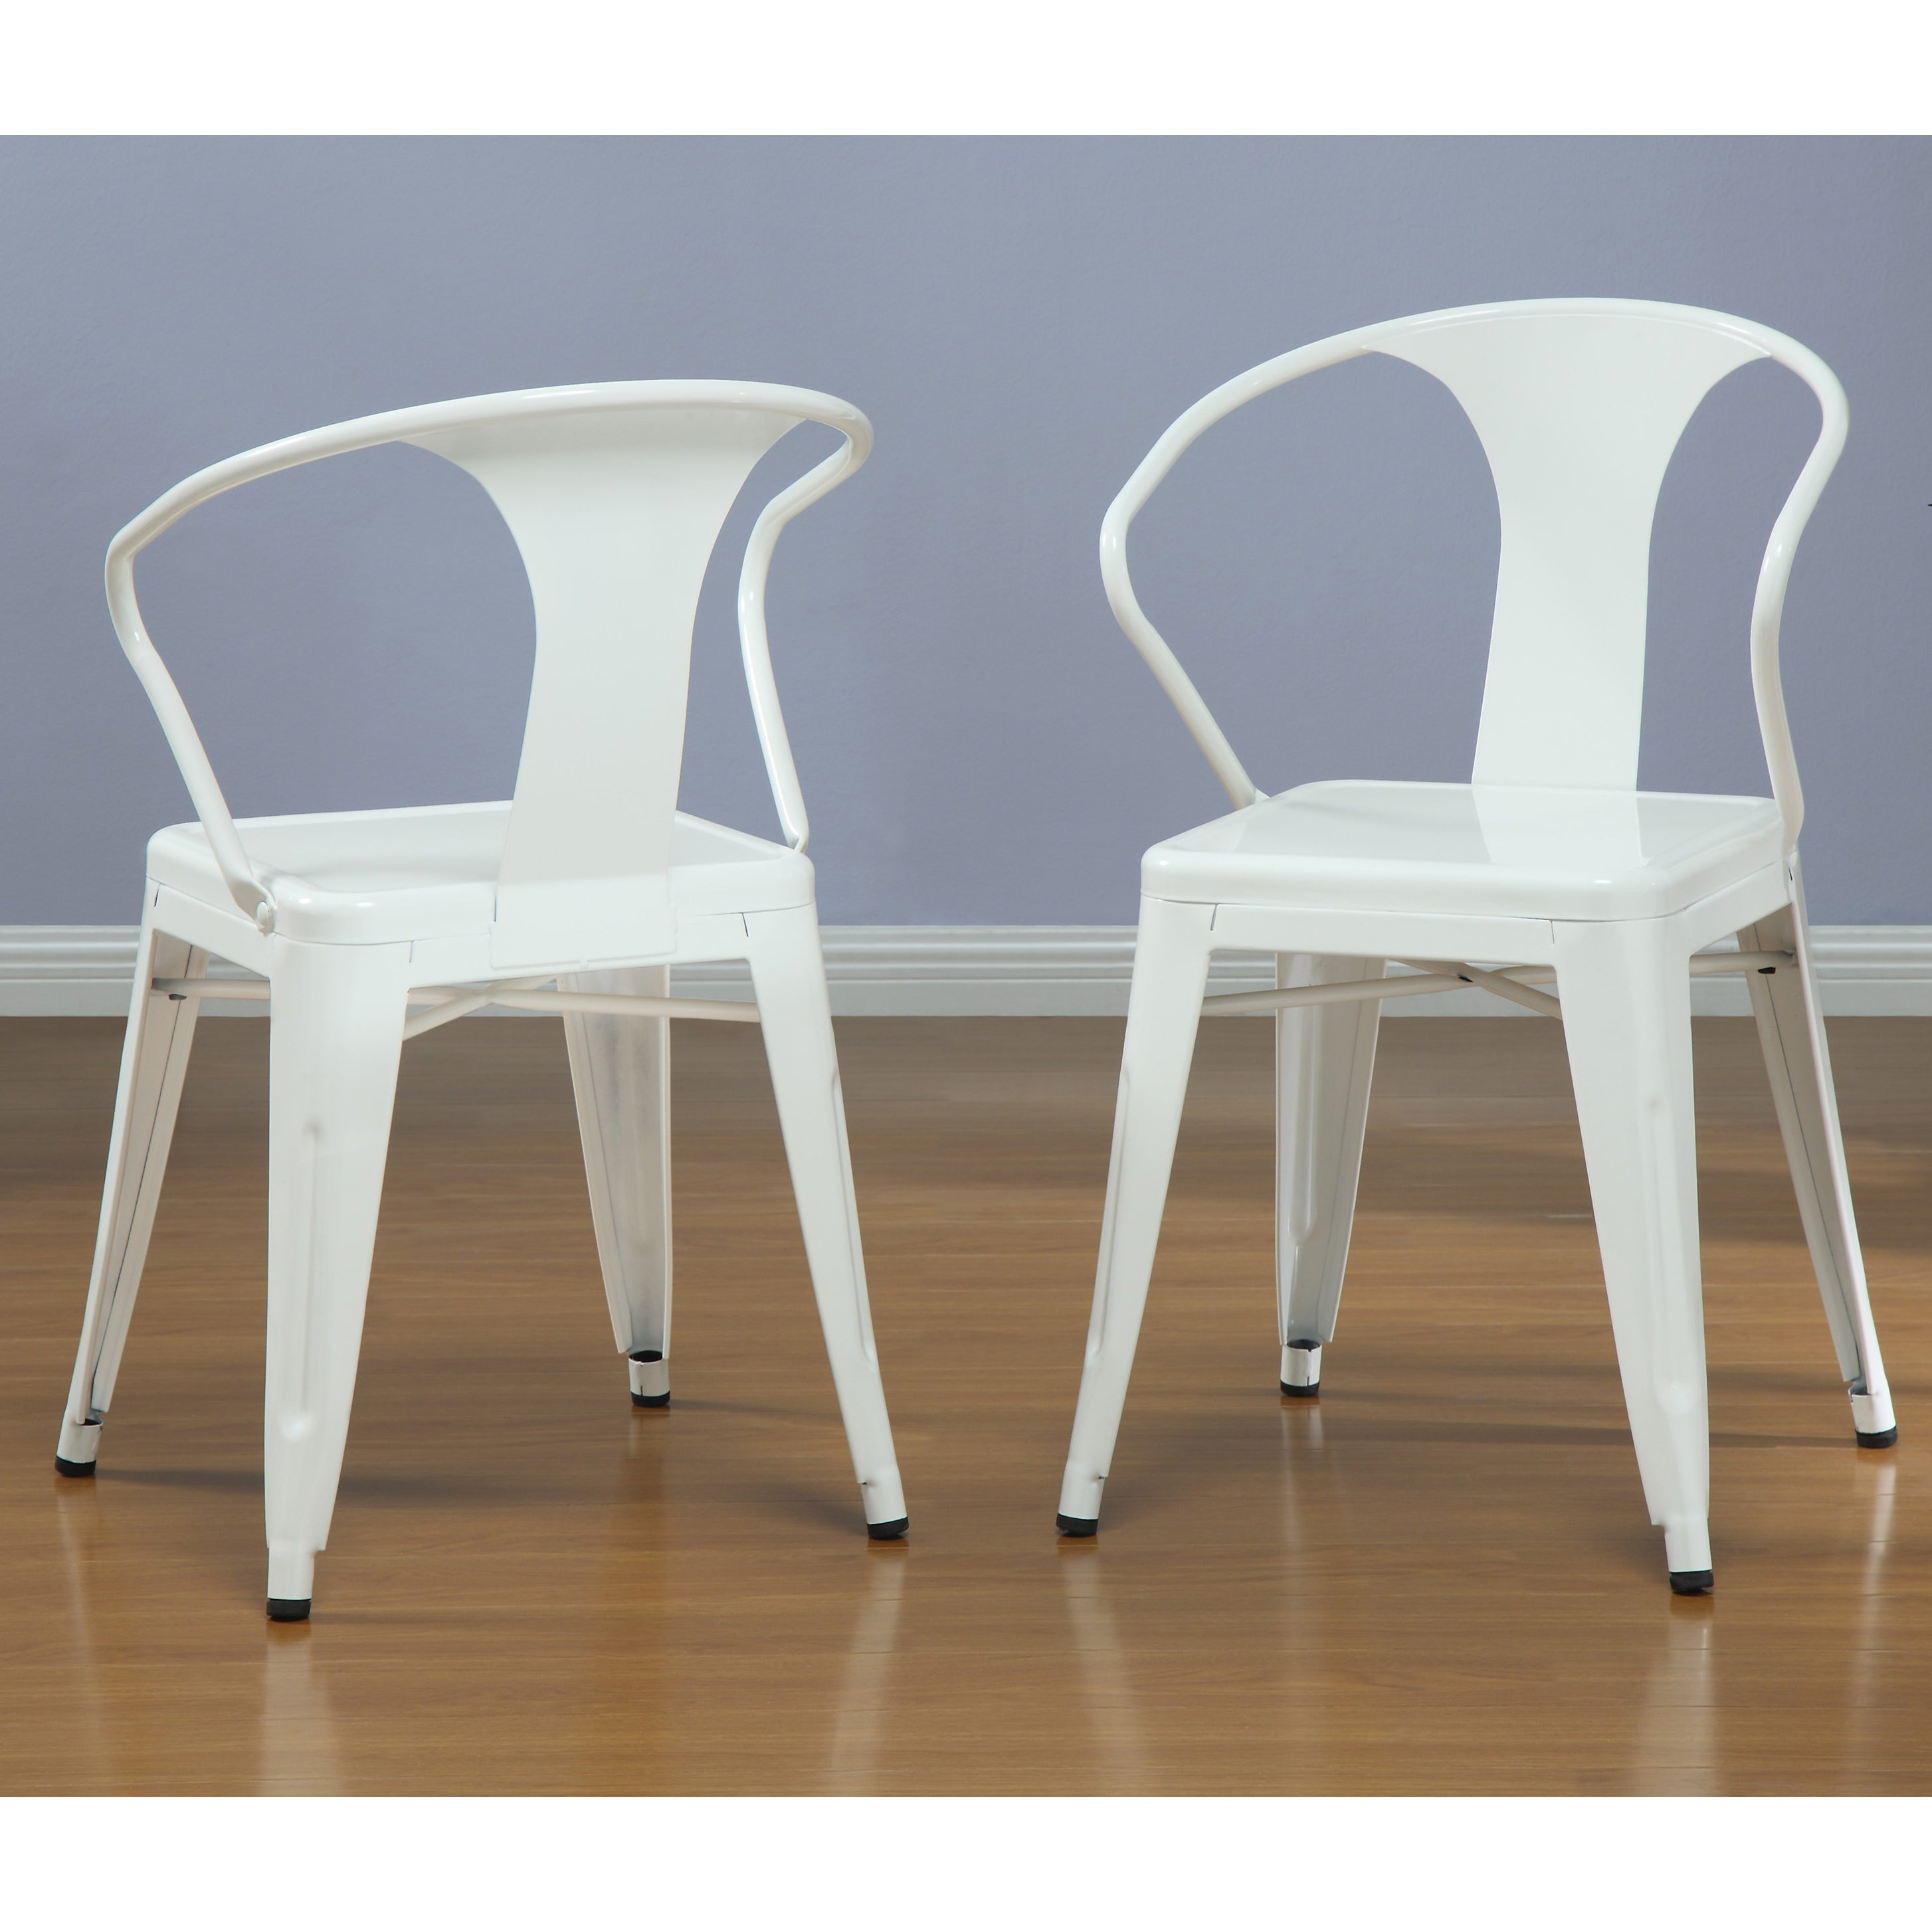 Beautiful White Tabouret Stacking Chairs (Set Of 4)   Free Shipping Today    Overstock.com   12950047